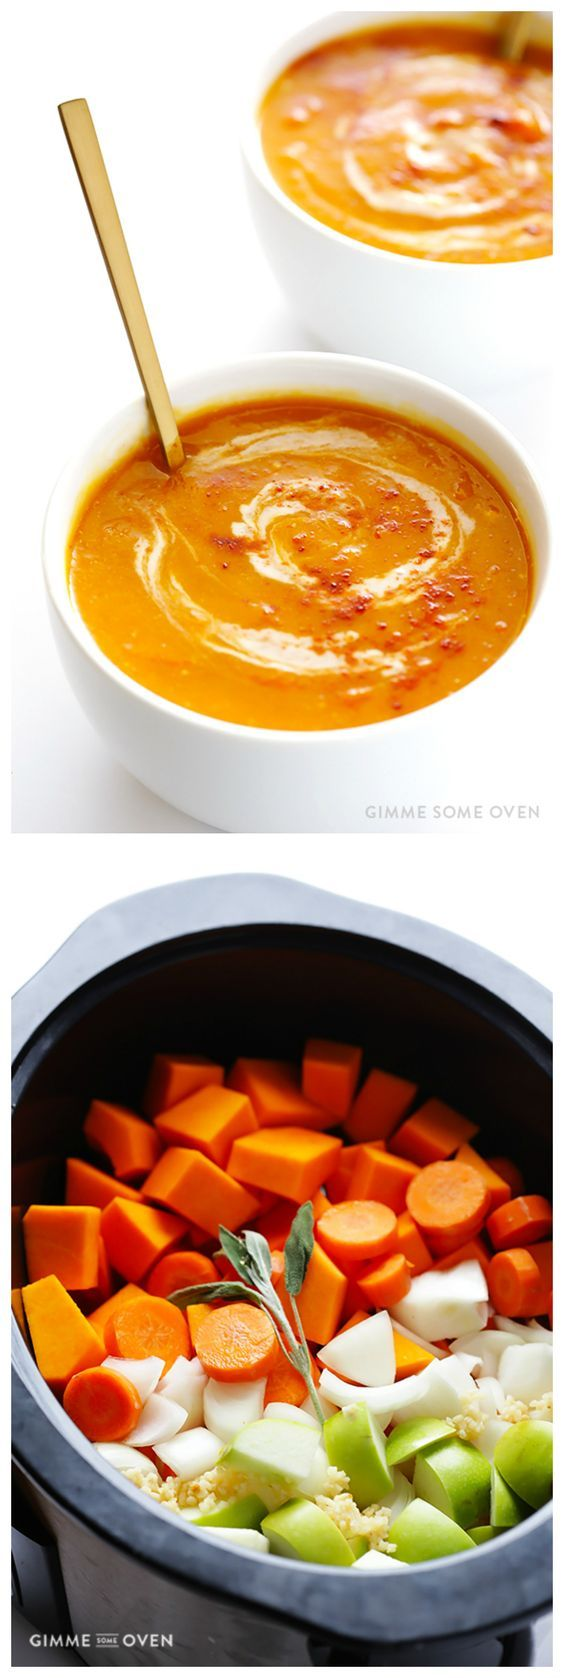 Slow Cooker Butternut Squash Soup - Easy to make, naturally vegan and gluten-free, and SUPER good!